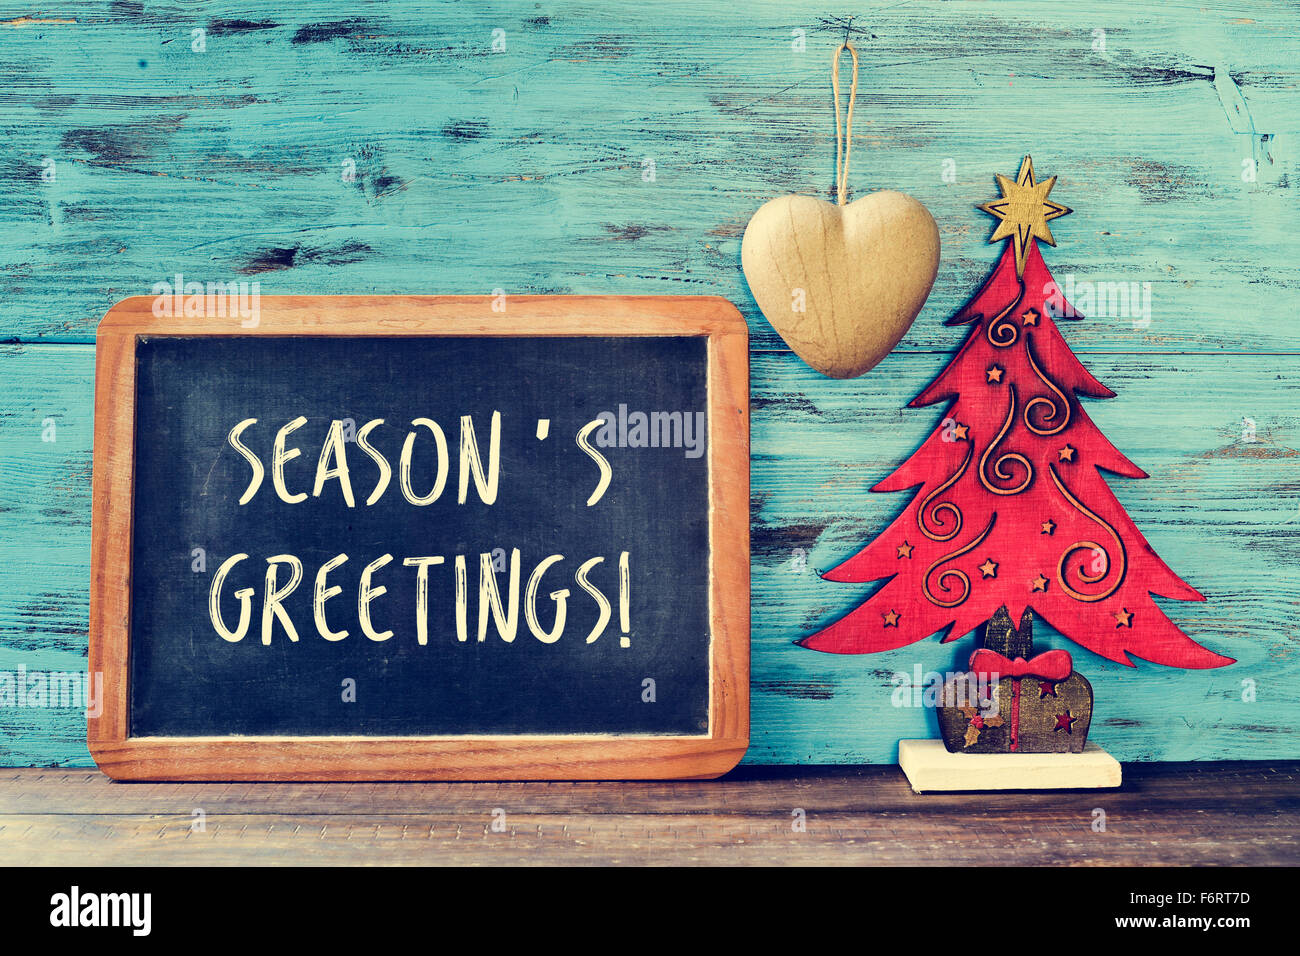 Seasons greetings christmas stock photos seasons greetings a chalkboard with the text seasons greetings written in it and a rustic wooden christmas tree m4hsunfo